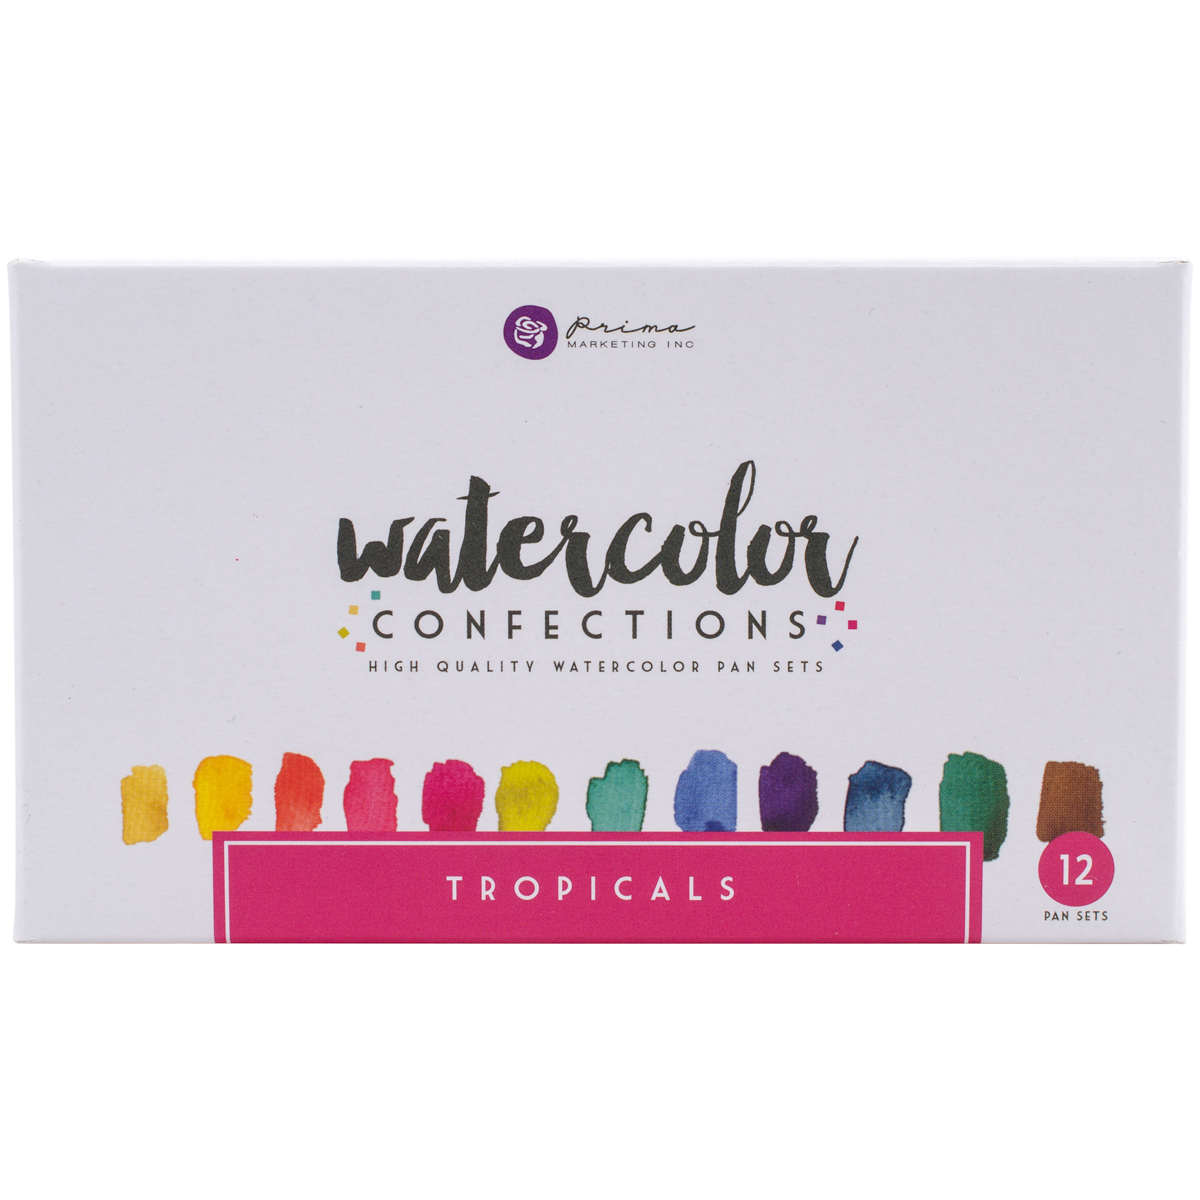 Prima Marketing Watercolor Confections Watercolor Pans, 12pk, Tropicals